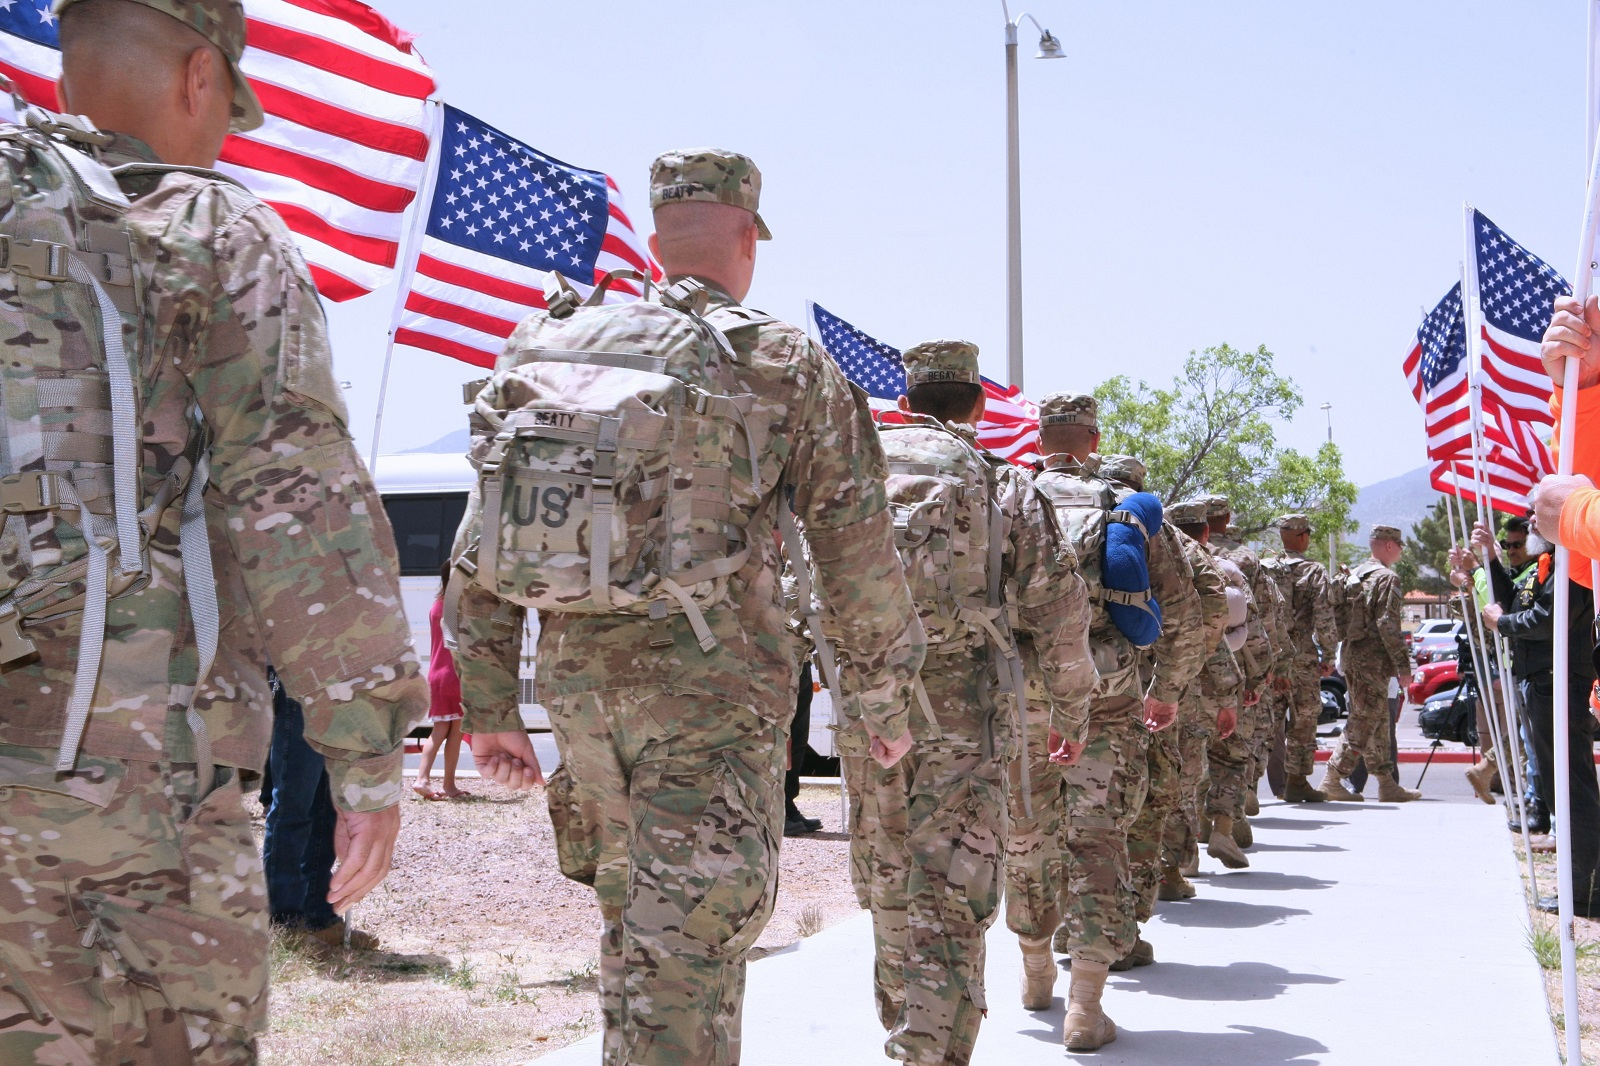 After saying goodbye to family and friends, soldiers from the 40th Expeditionary Signal Battalion march to the buses that will take them to the airfield, marking the start of their deployment to Afghanistan. (Maranda Flynn /Army)